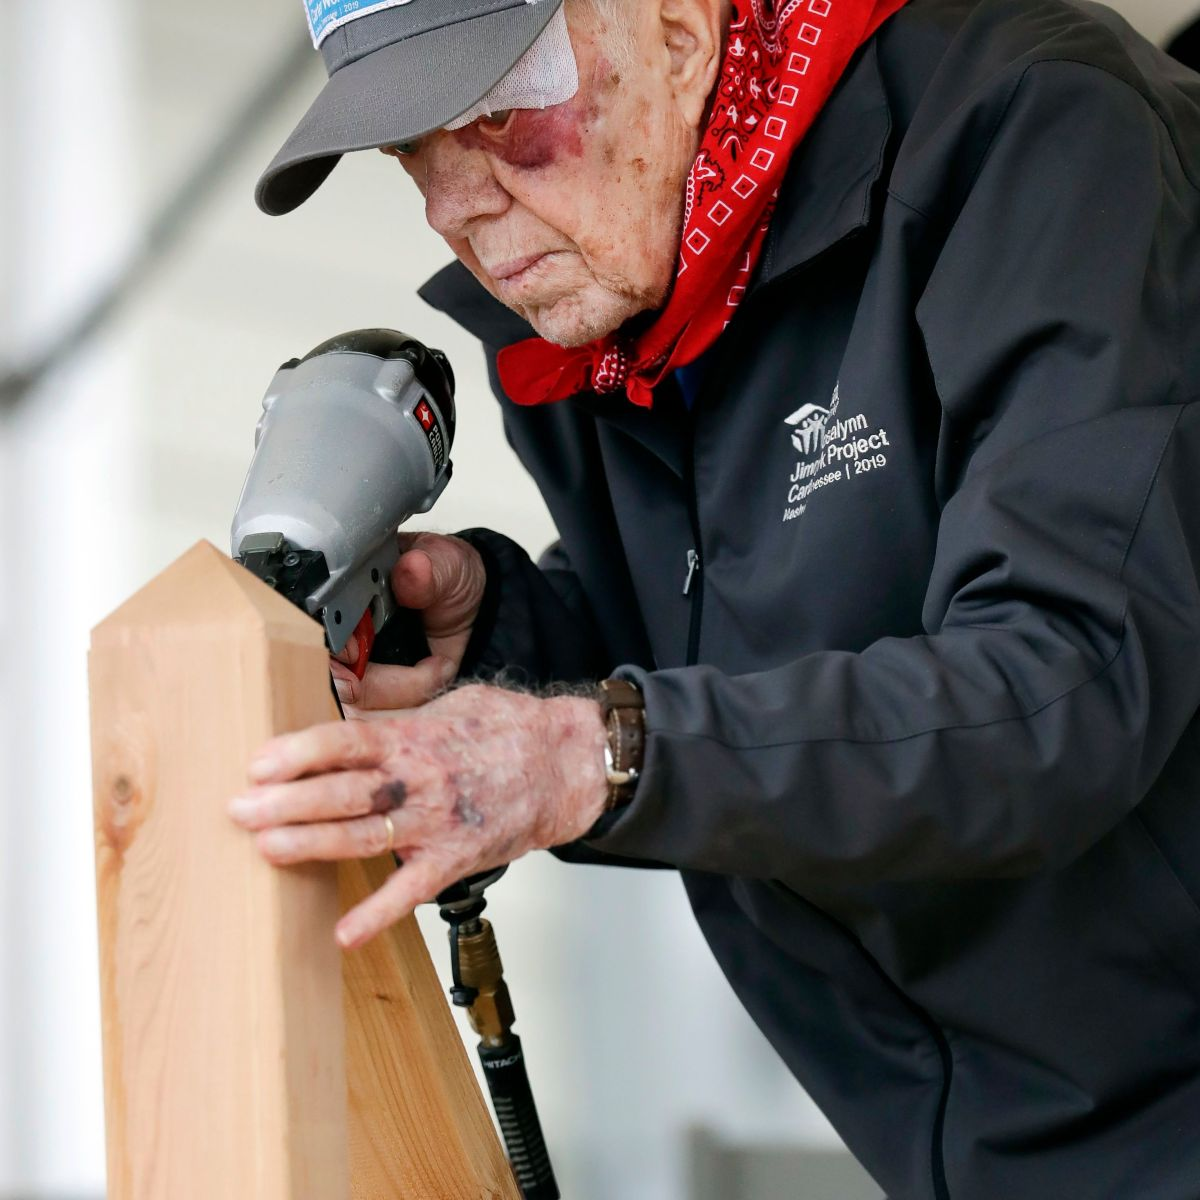 Jimmy Carter, 95, Attends Habitat for Humanity Project Despite Black Eye and Stitches From Fall